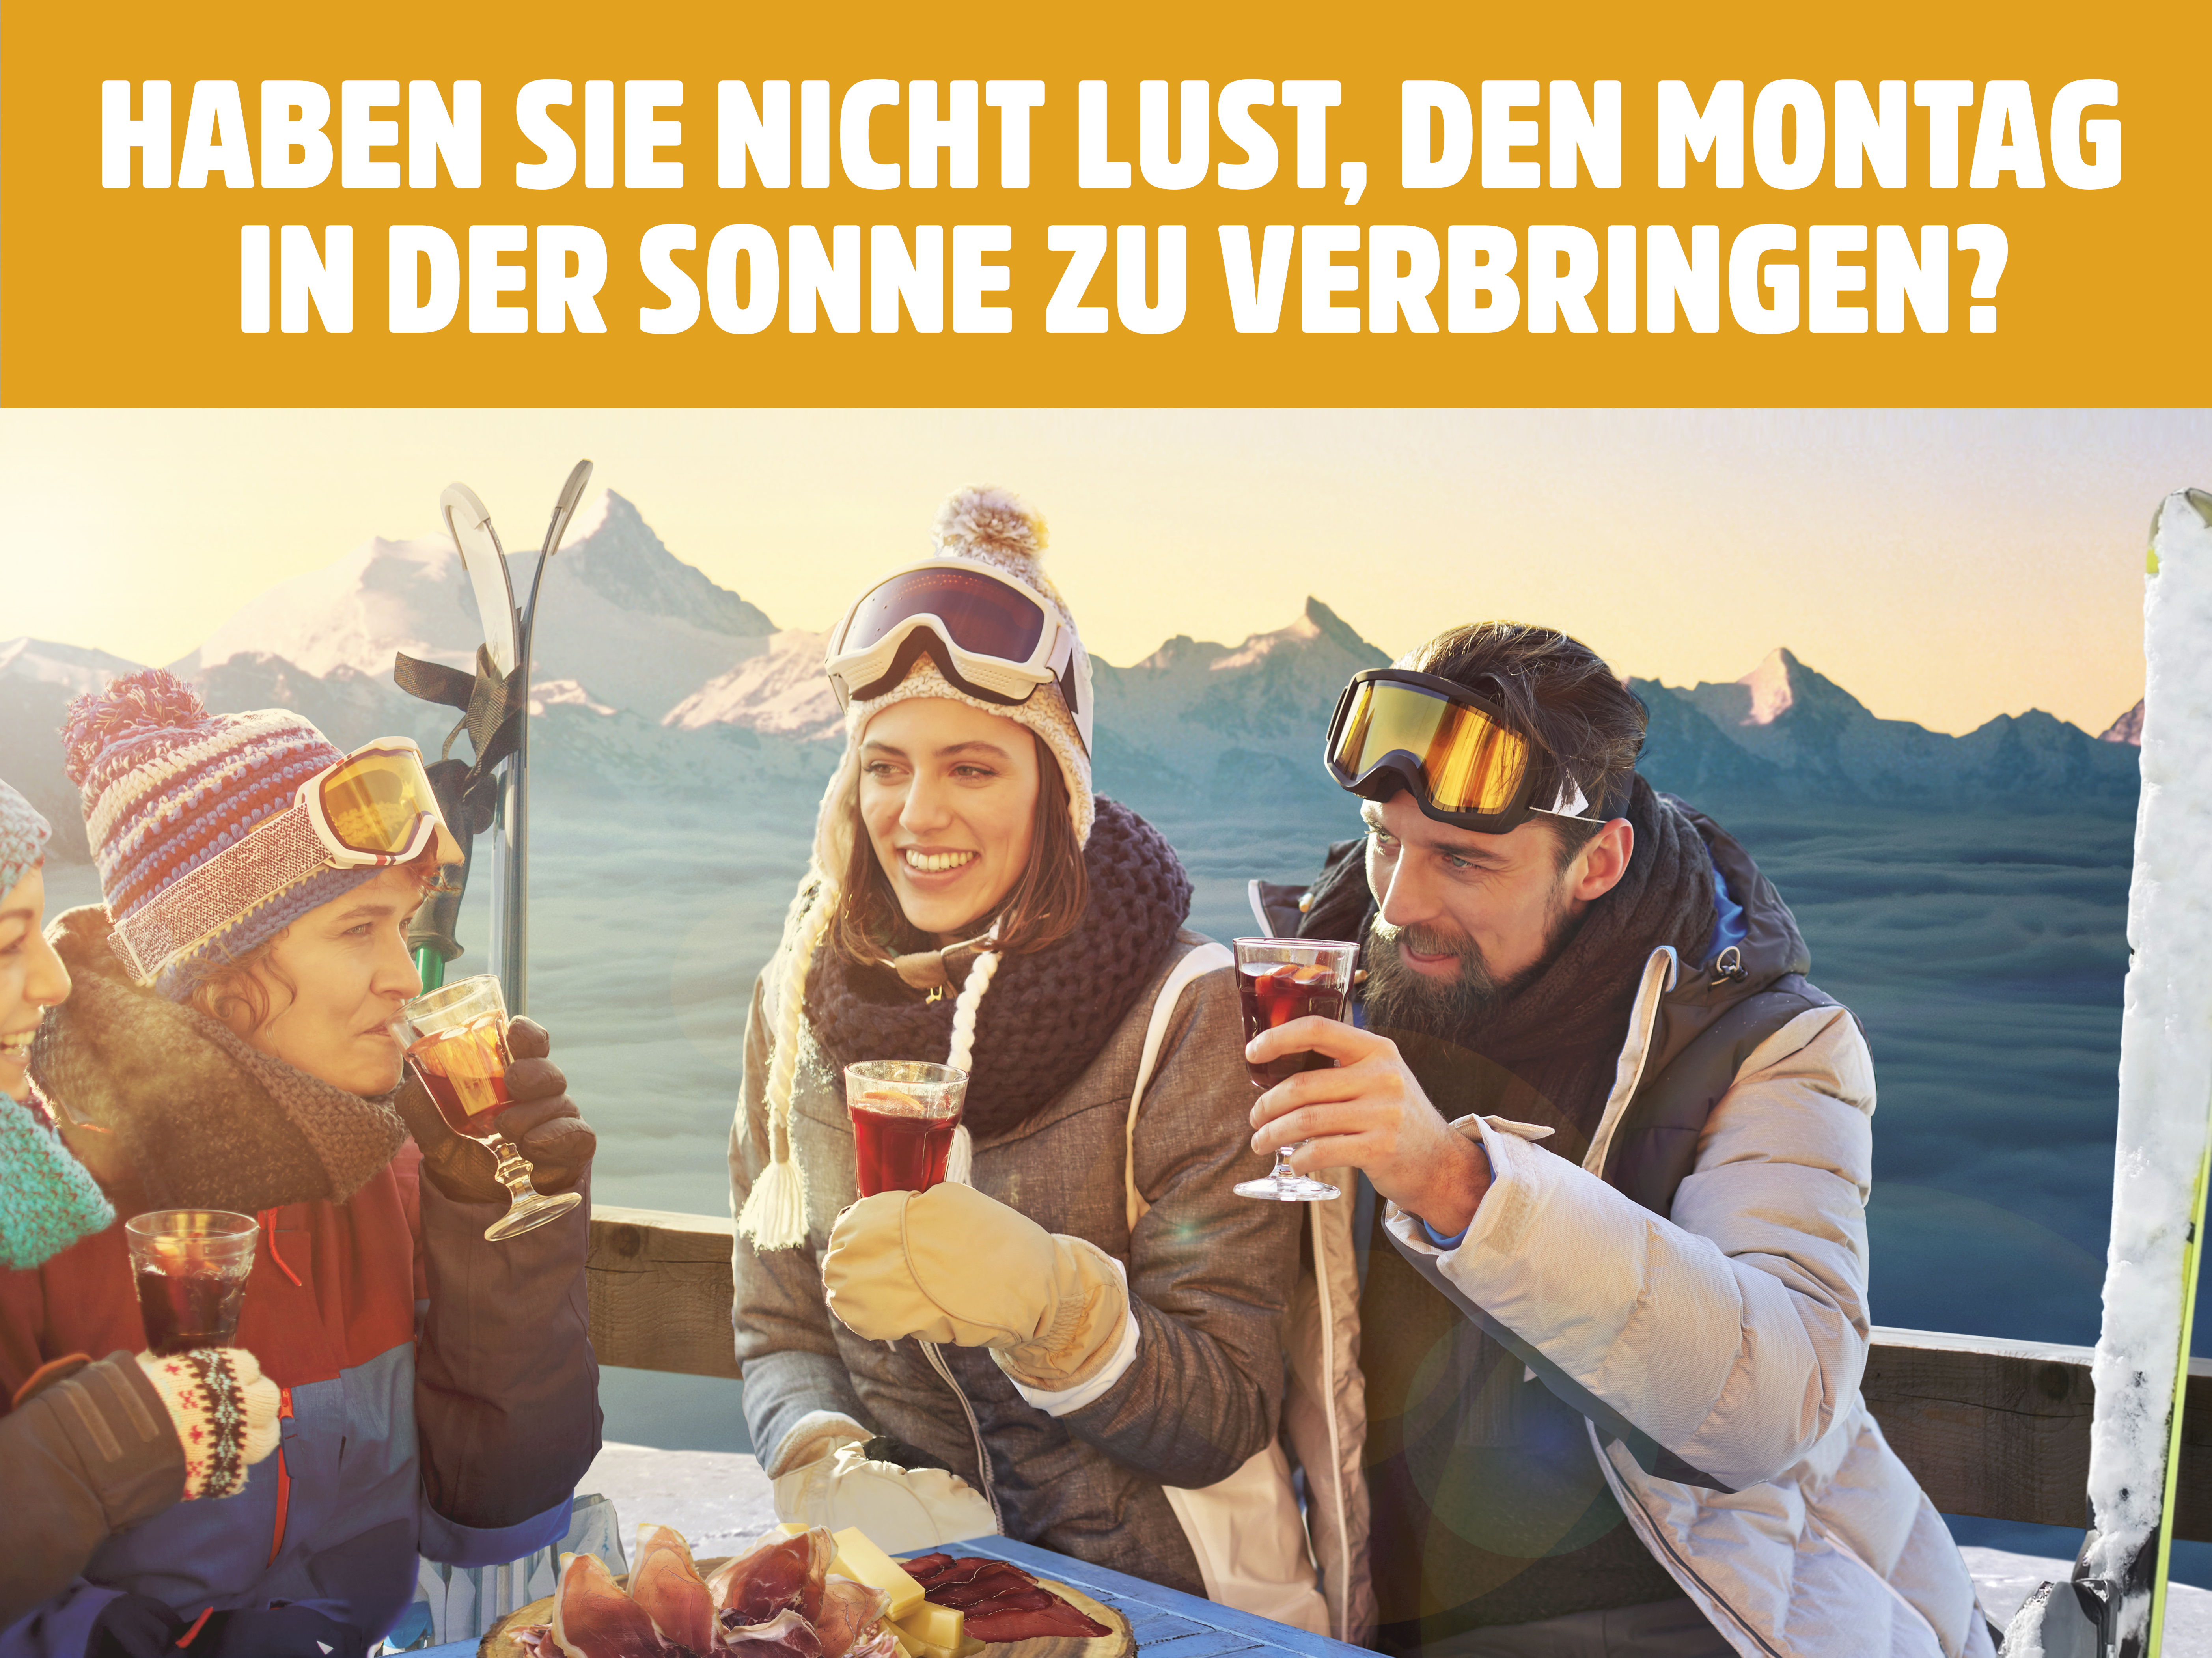 how scoiet deals with interracial dating: montags in der sonne online dating